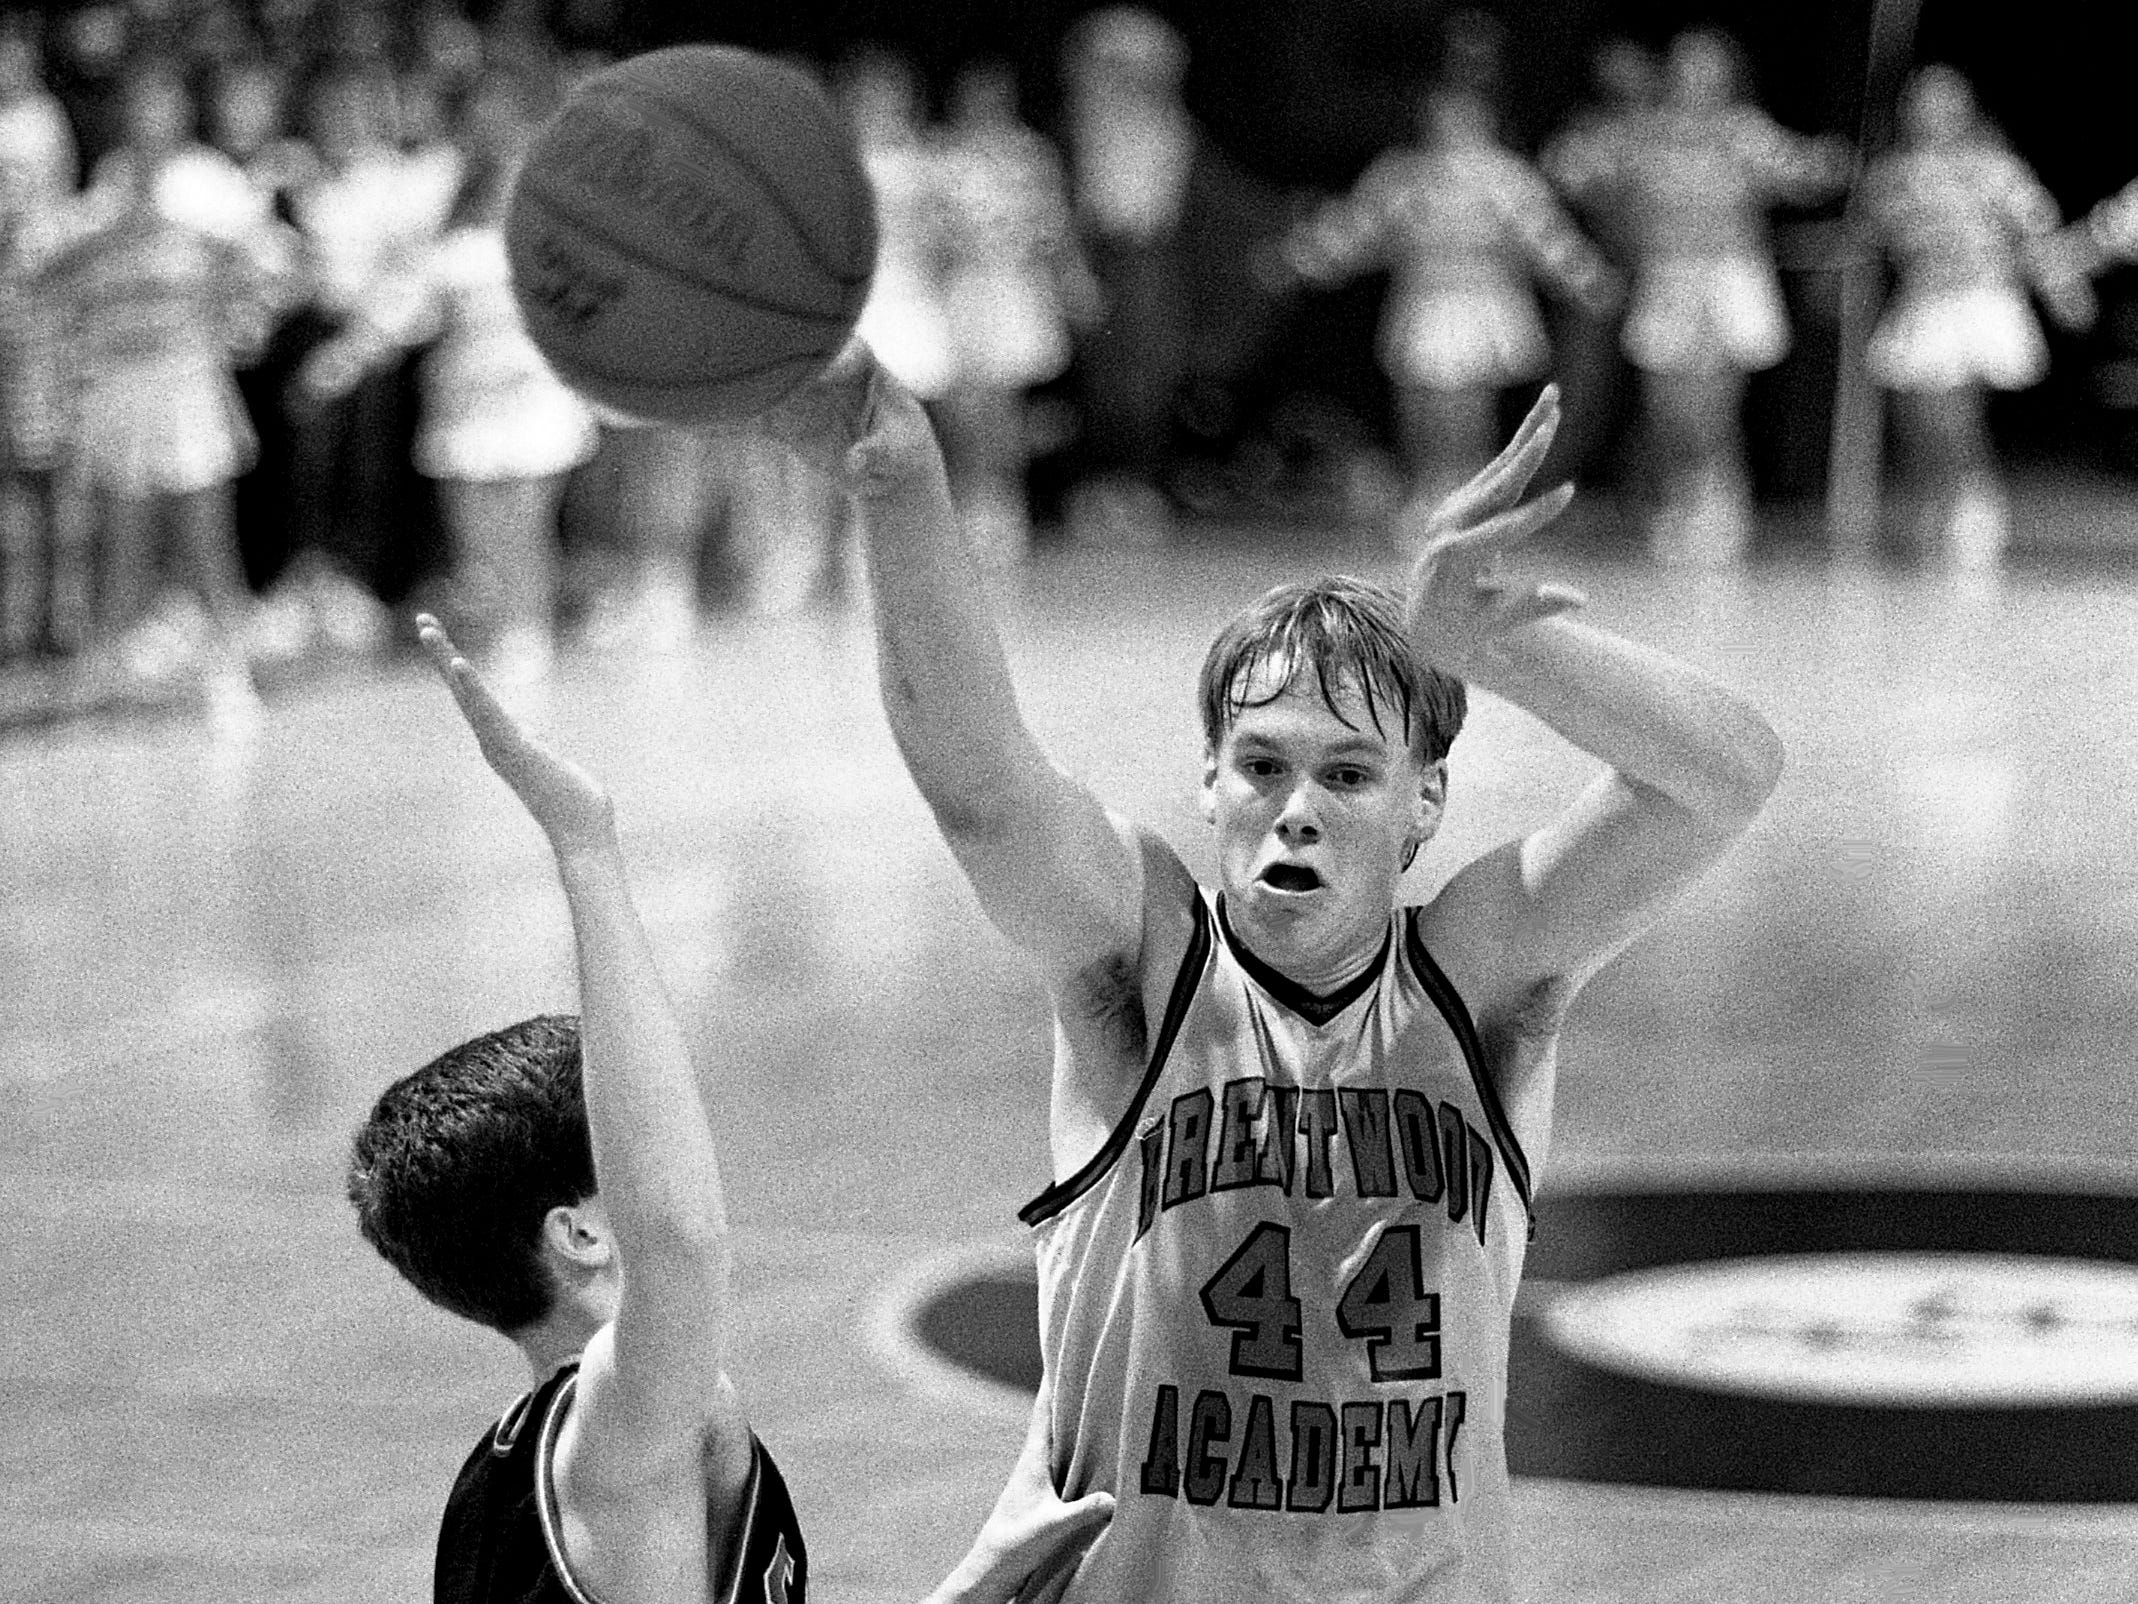 Brentwood Academy's Shawn Wilson (44) passes inside to a teammate while guarded by Klane Maples of Cookeville High on Feb. 17, 1989. The host Brentwood of Class AA showed its muscle against Class AAA opposition, beating No. 7-ranked Cookeville for the second time this season.